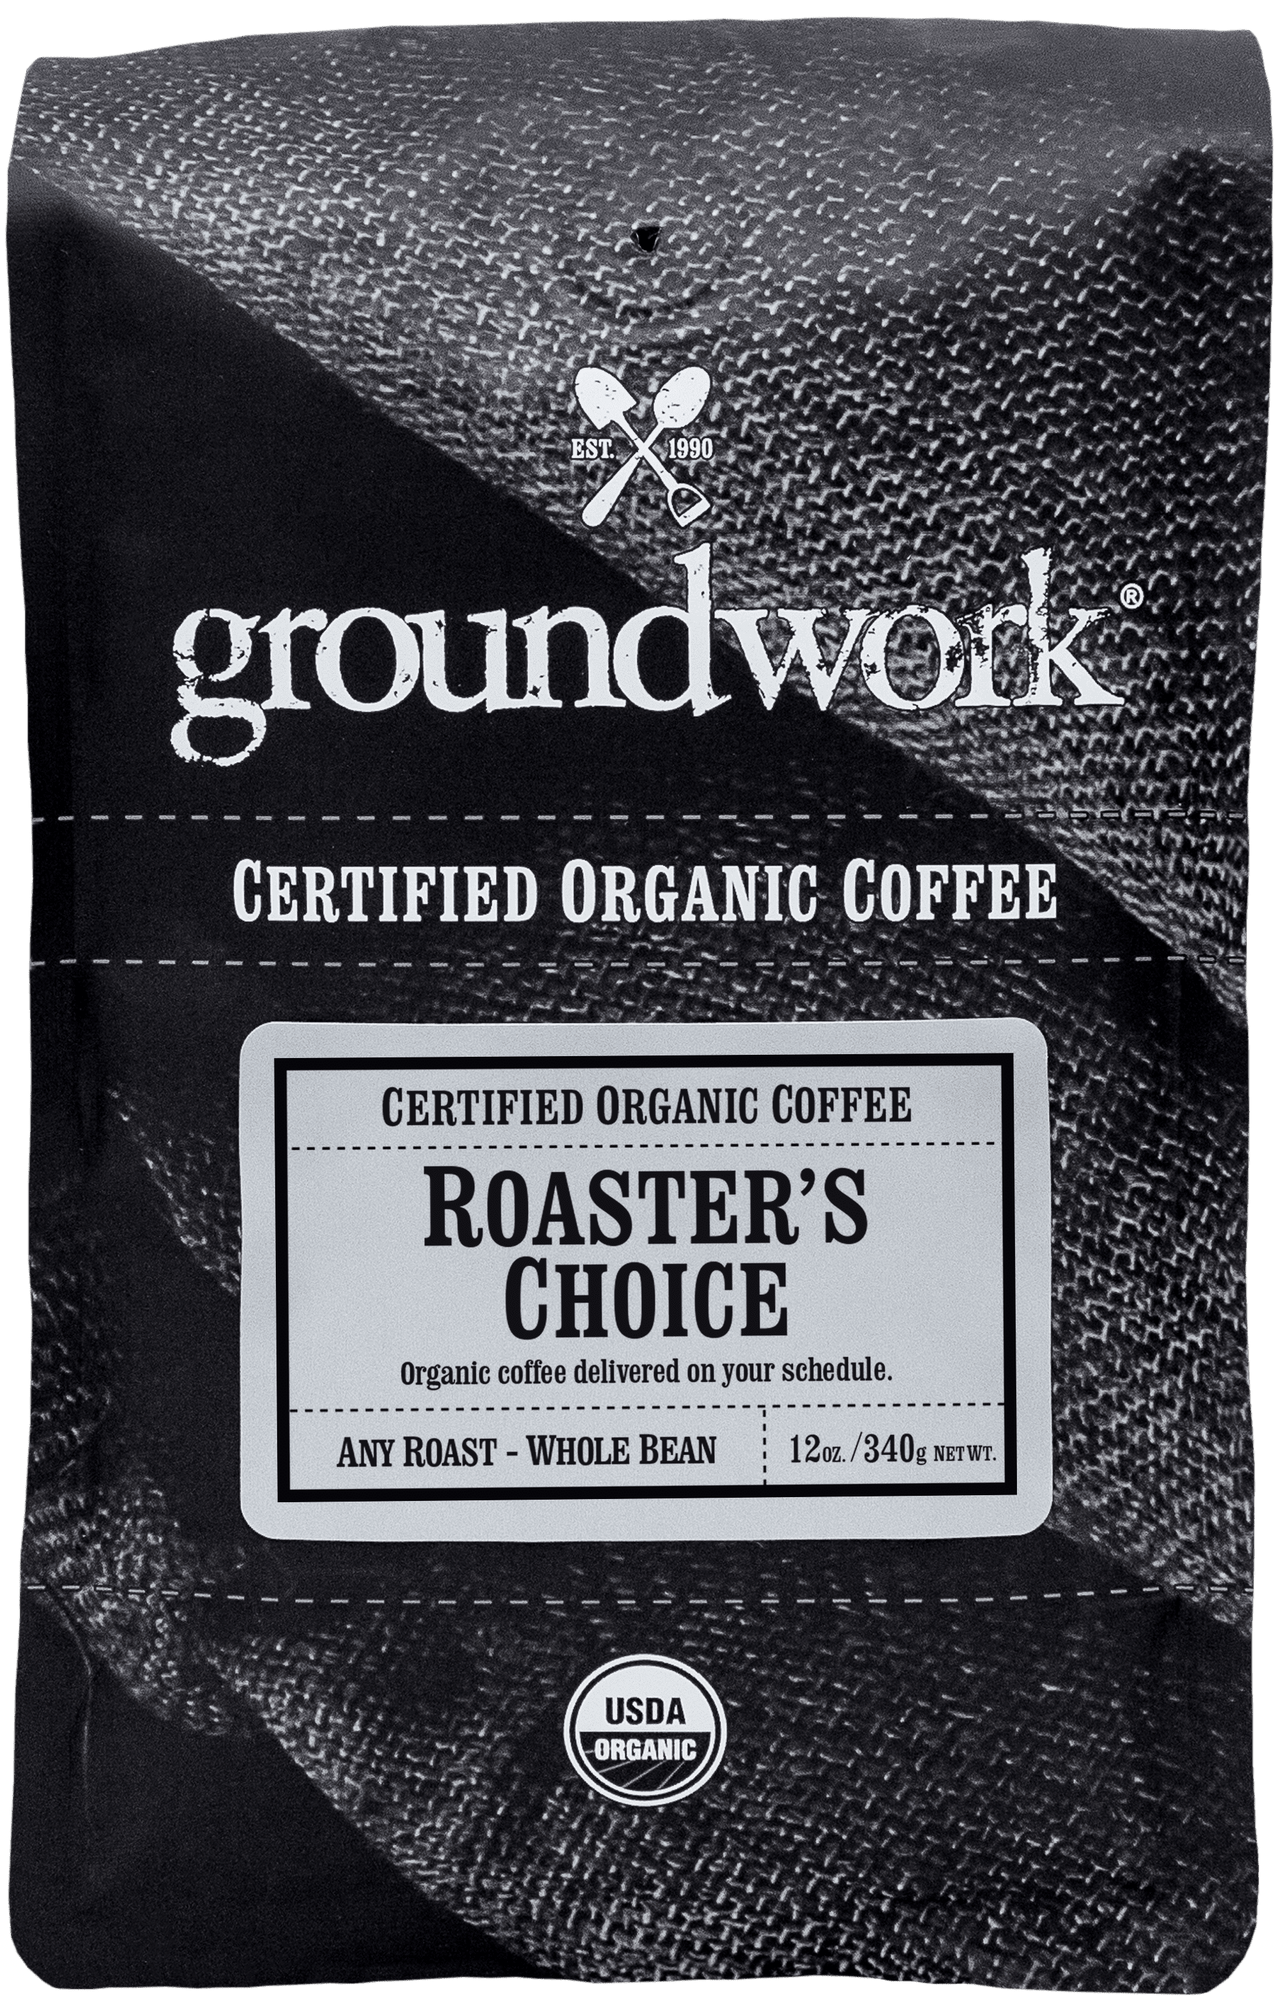 Roaster's Choice 3 Month Gift Coffee Subscription